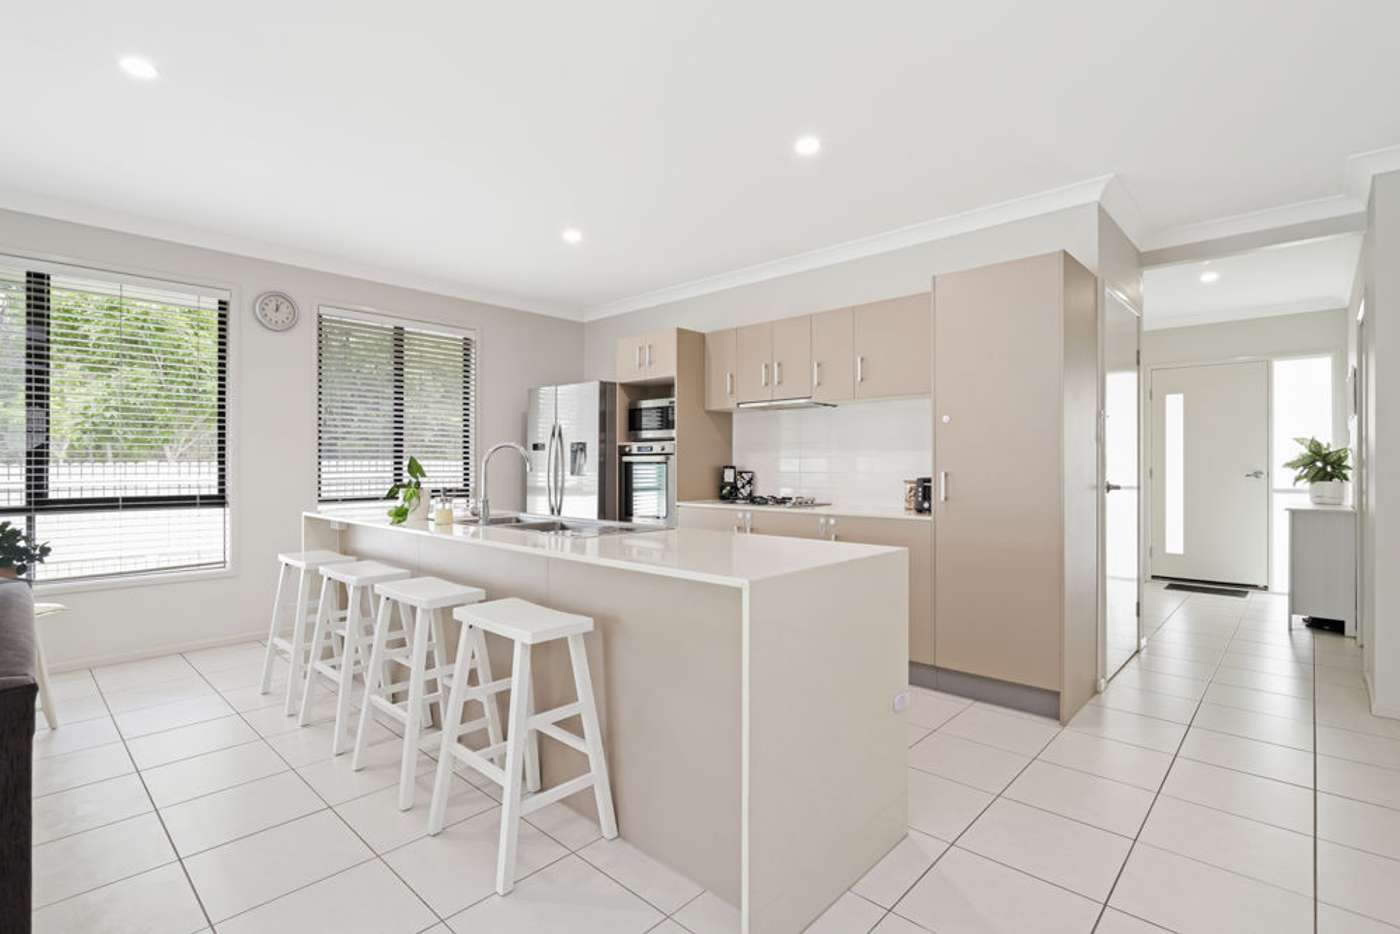 Fifth view of Homely house listing, 62 Norman Drive, Cornubia QLD 4130